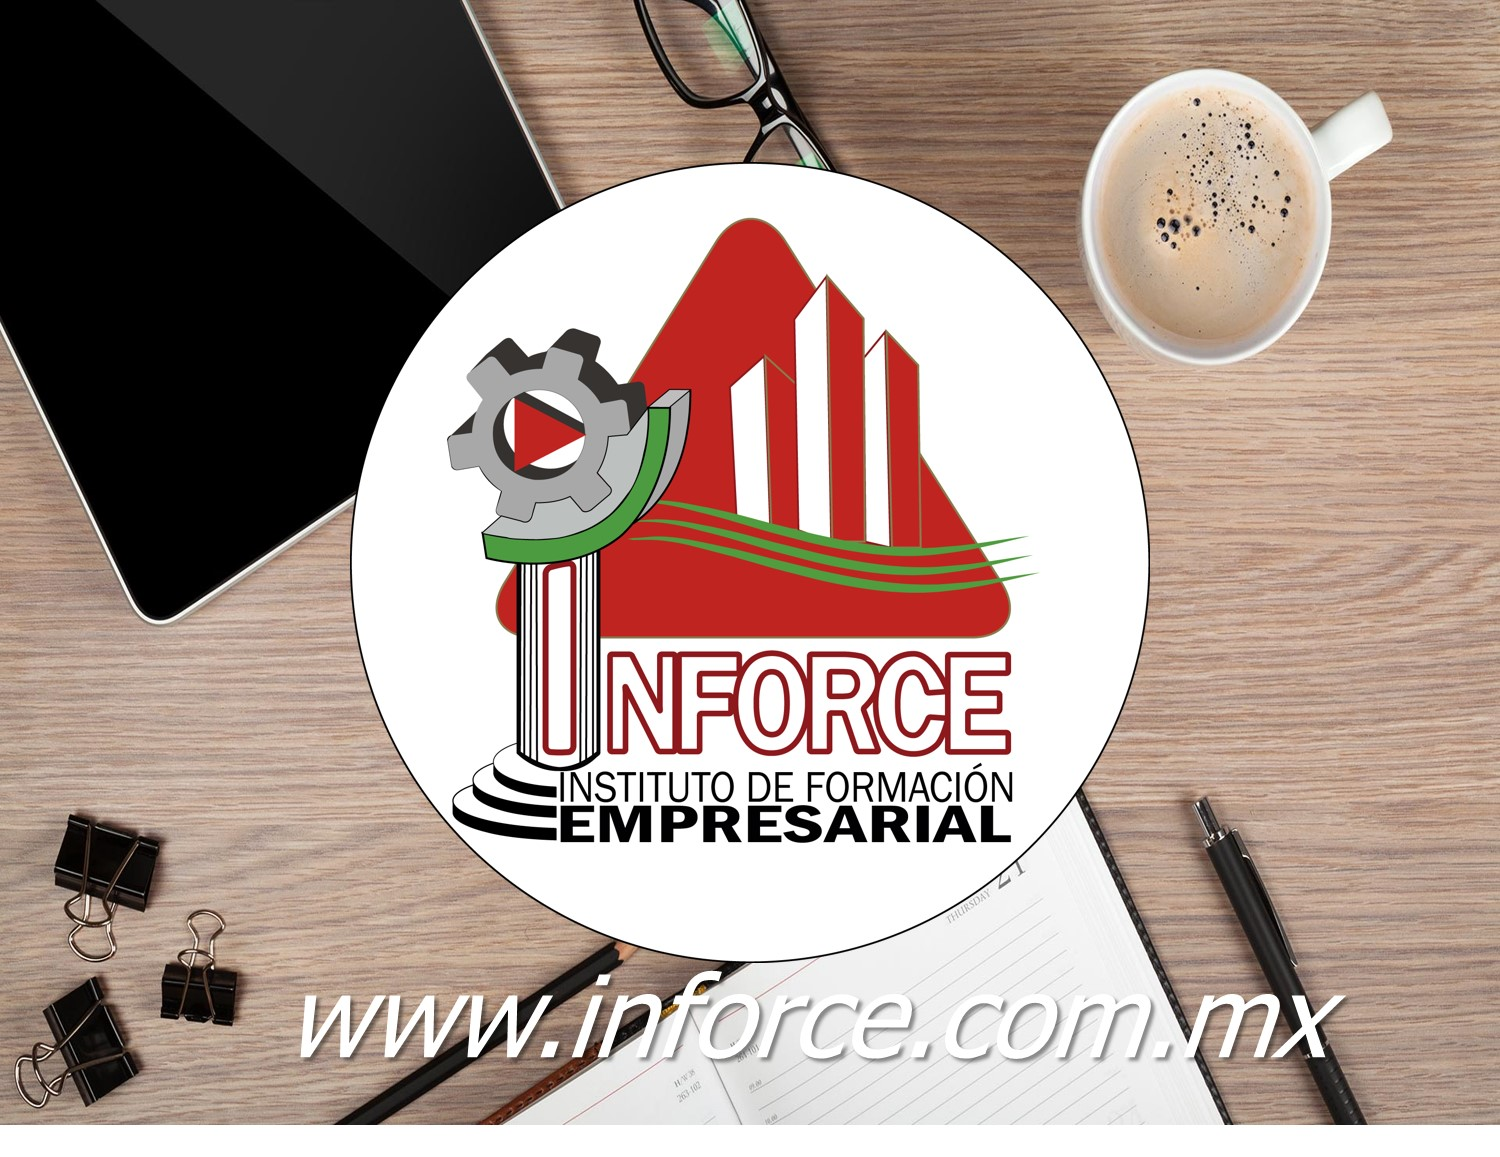 universidad-inforce-7.jpg